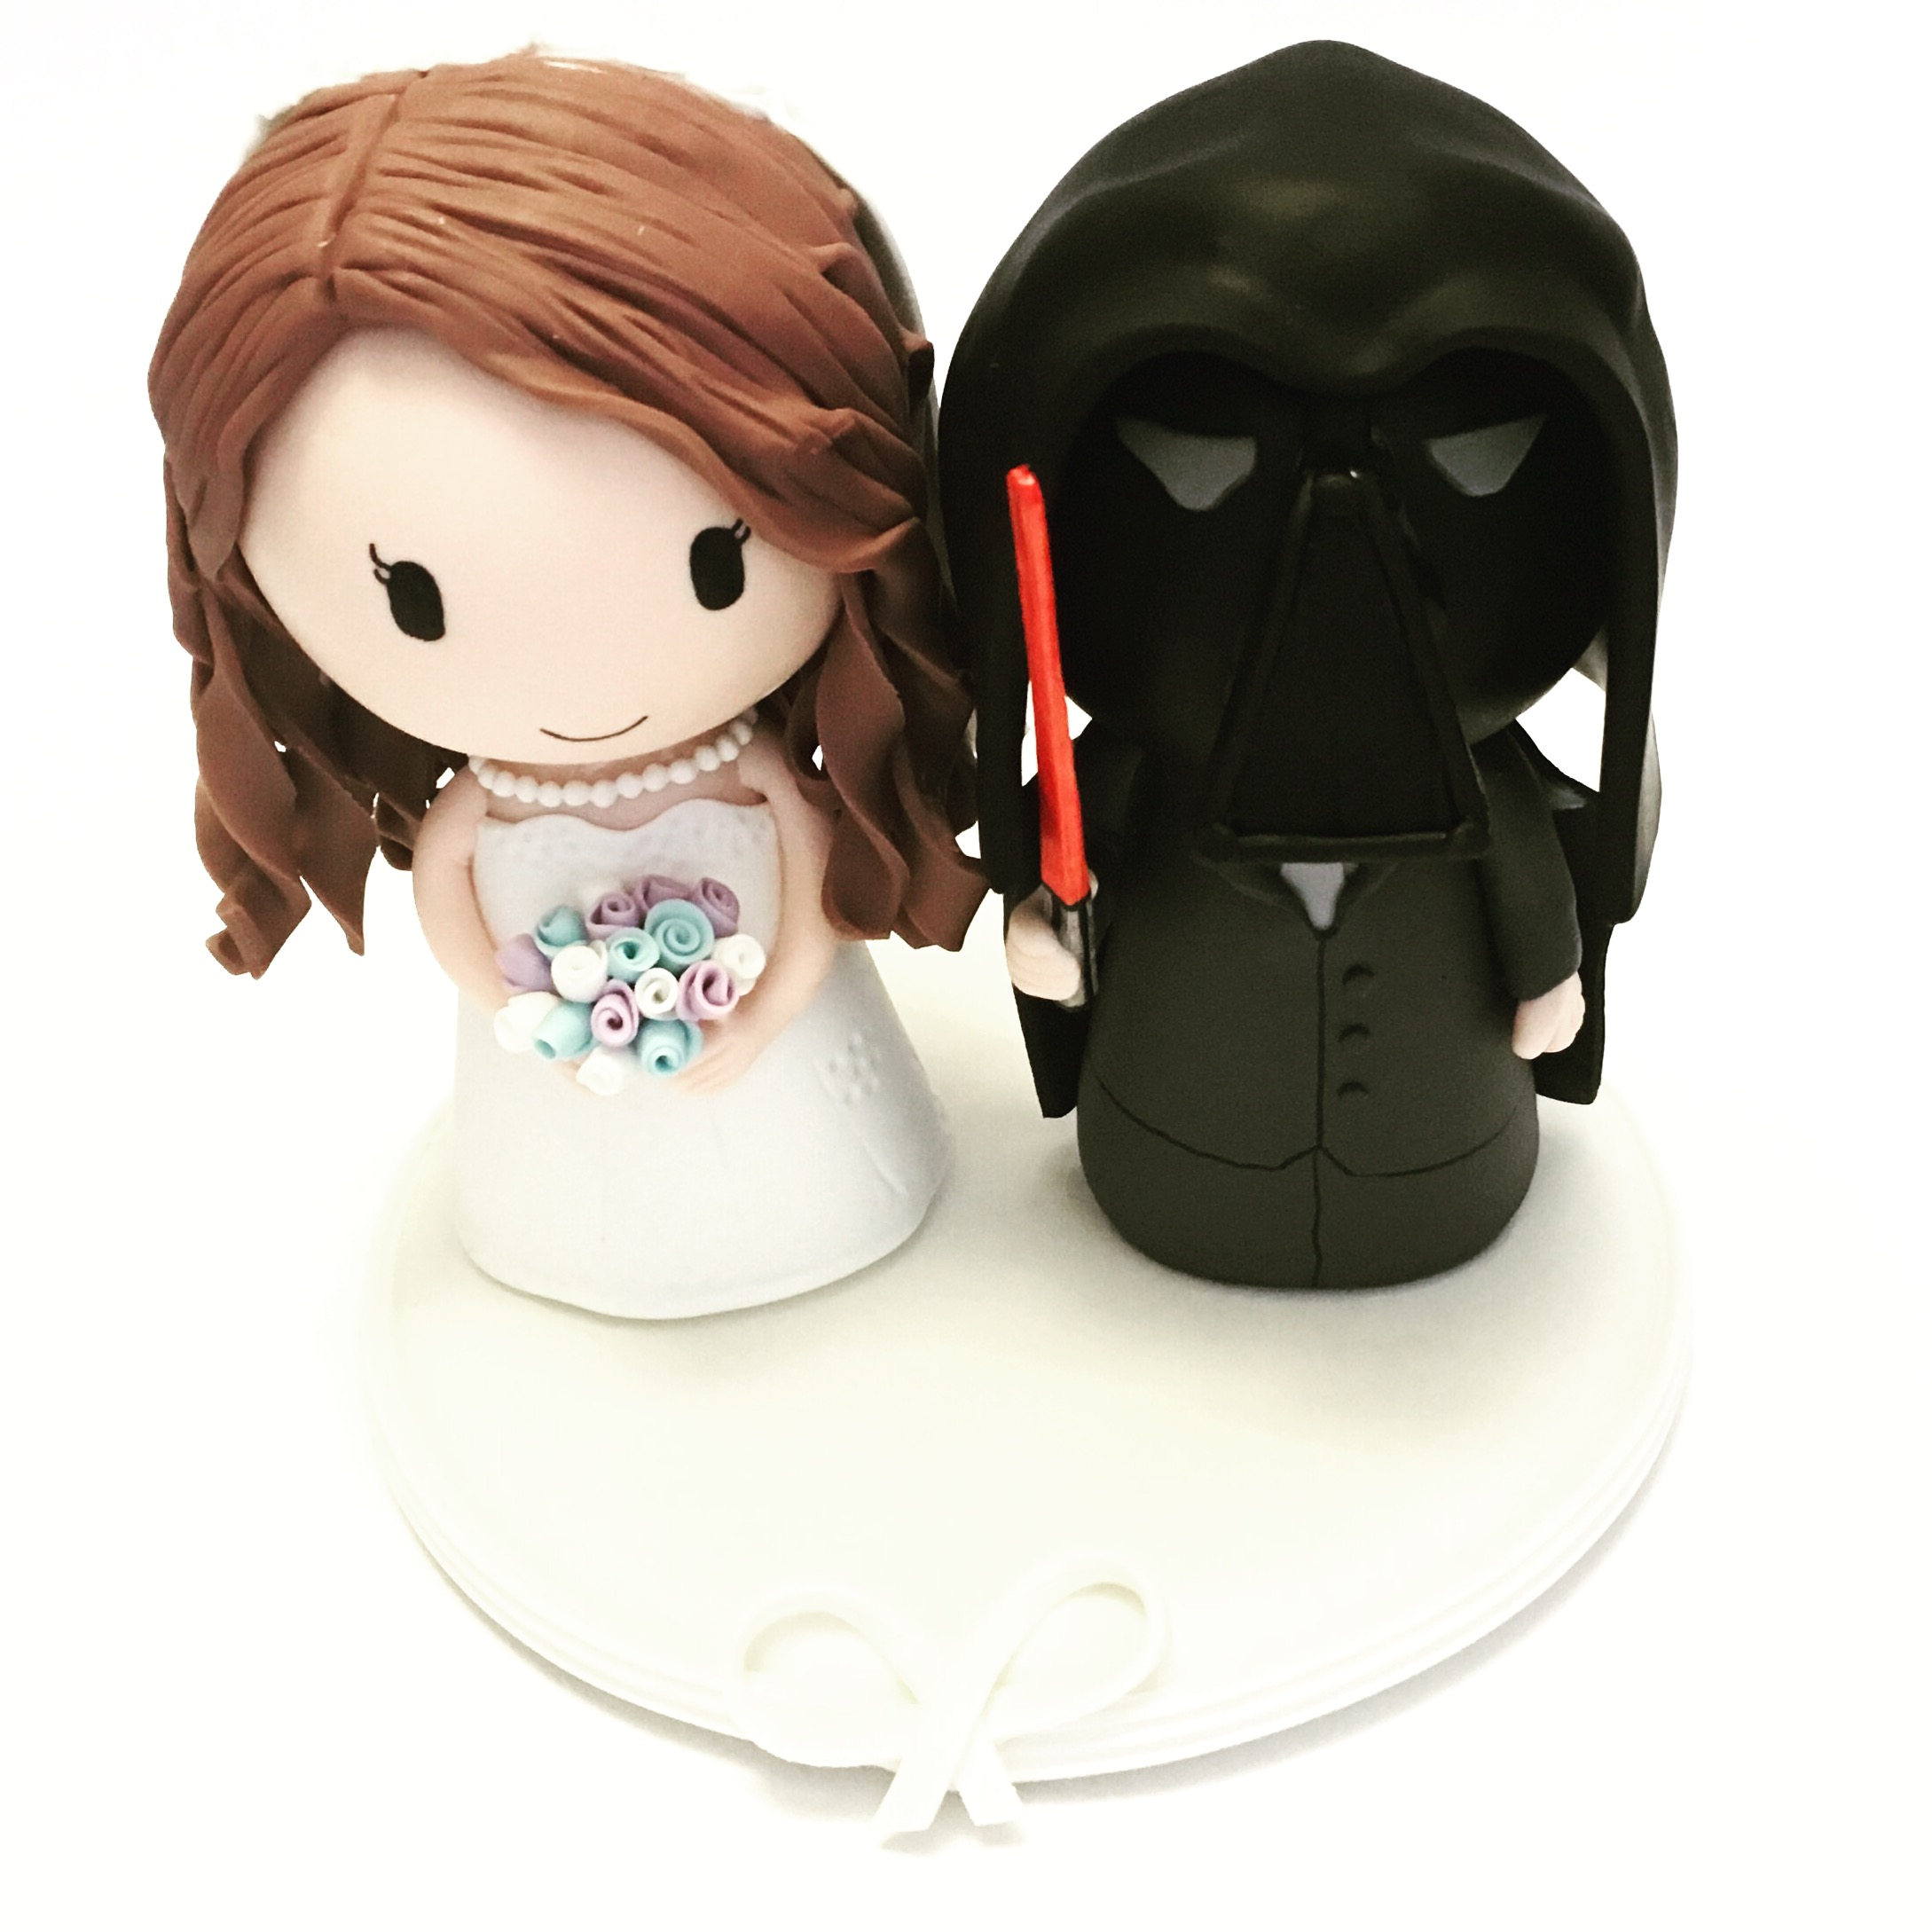 wedding-cake-topper-darth-vader-2